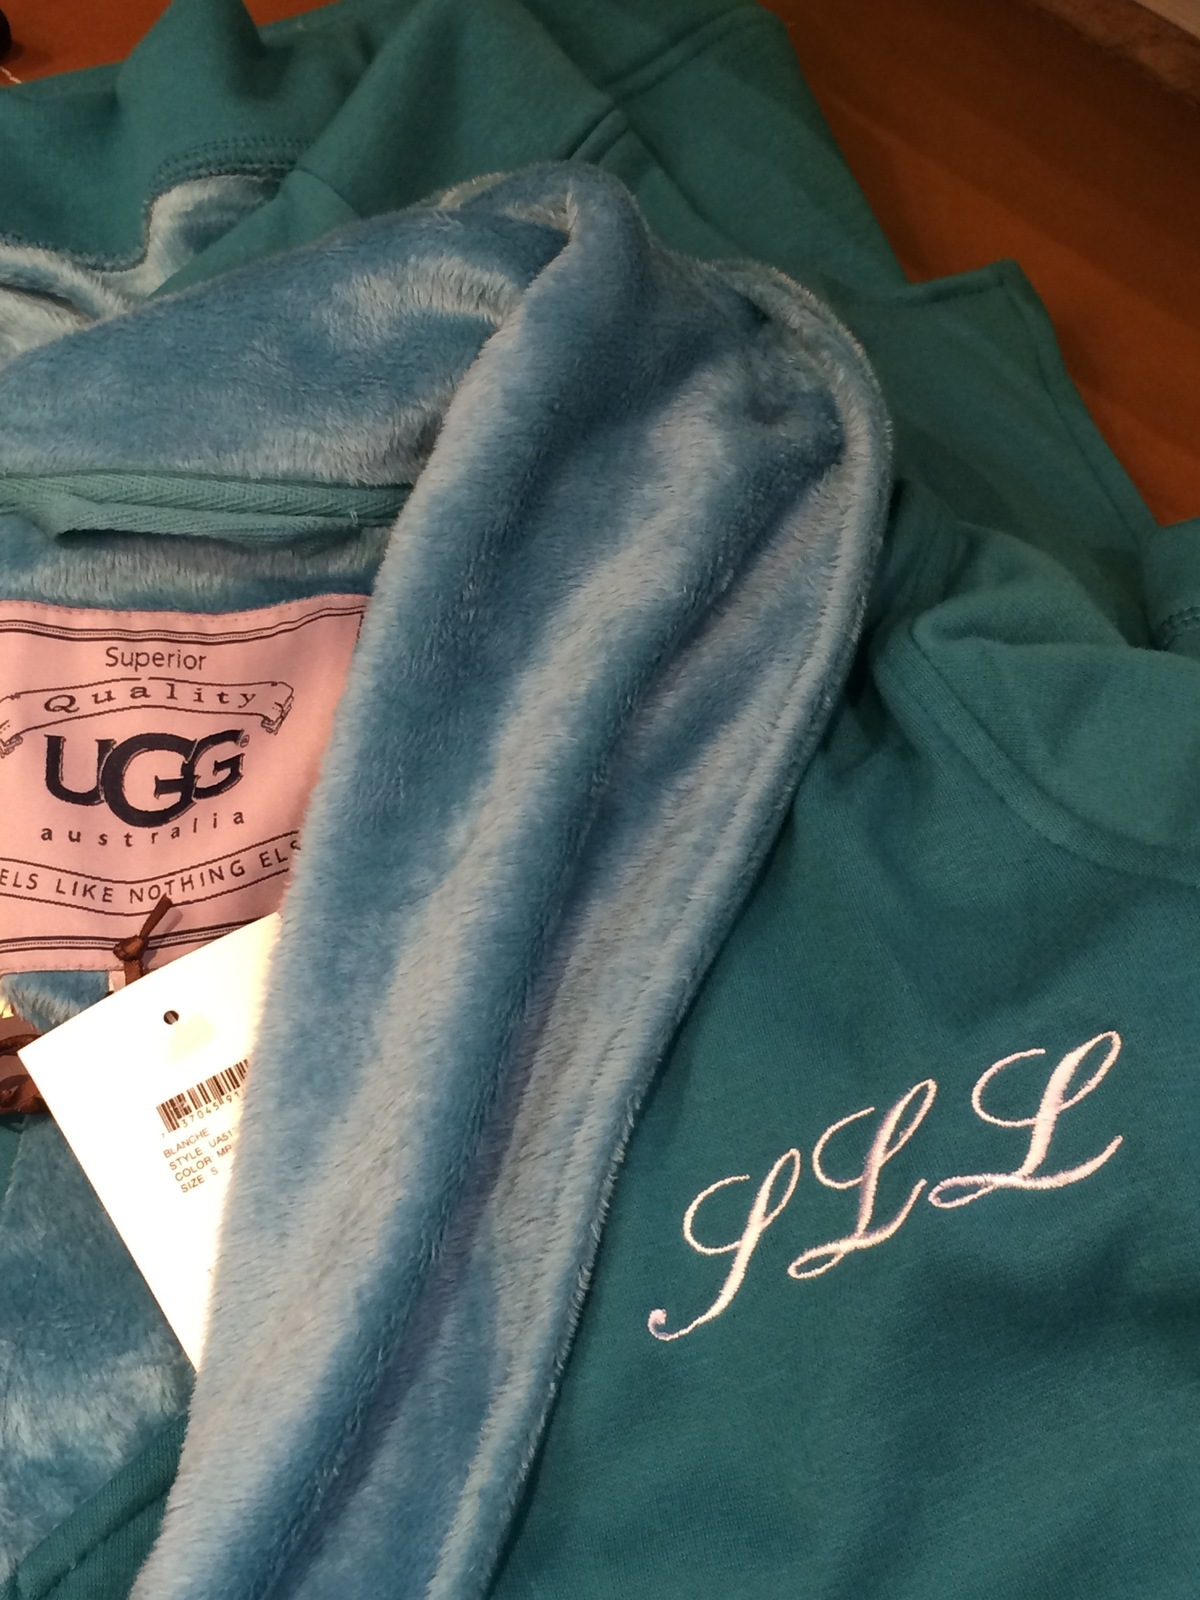 Hawthorne & Heaney visits for Ugg Australia Mother's Day Events London Hand Embroidery